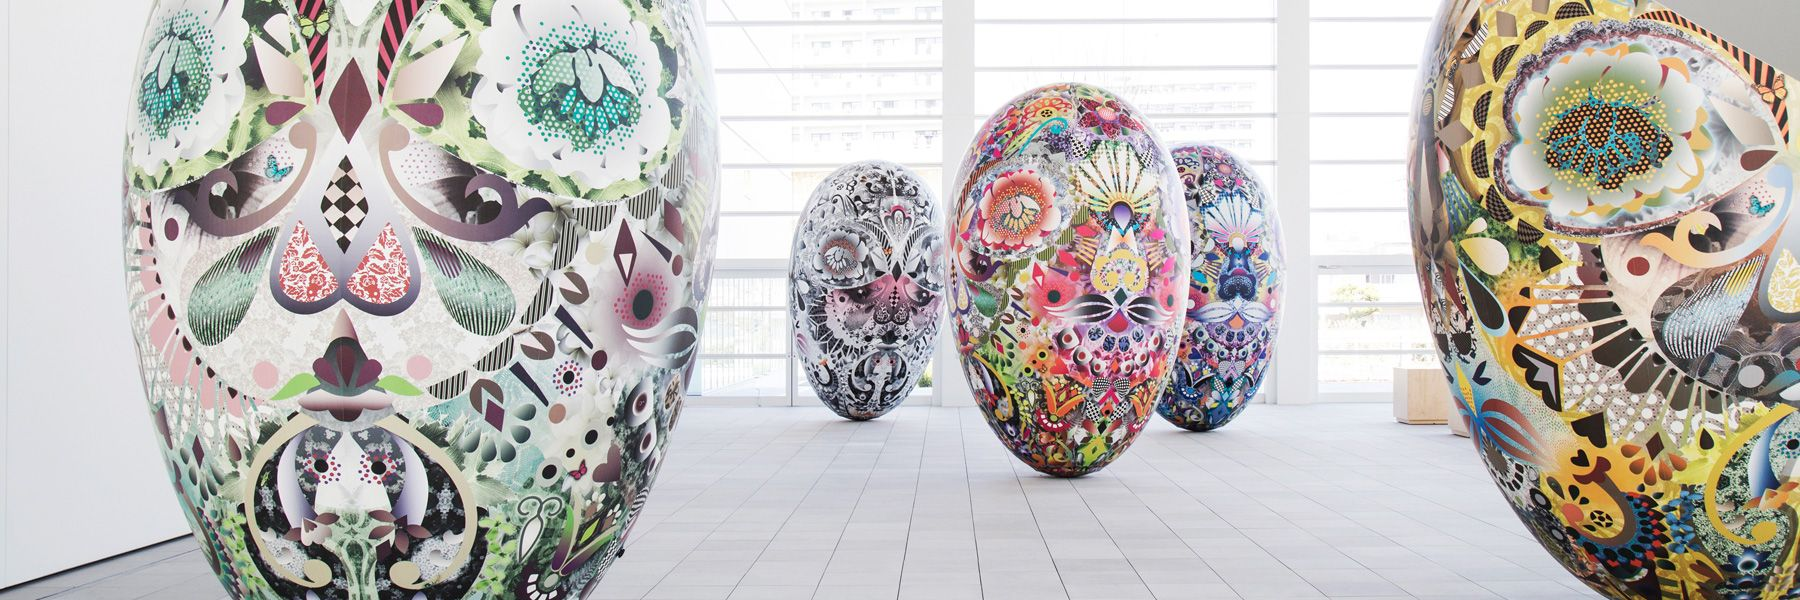 marcel wanders' inflatable egg-shaped objects at OPAM museum in japan